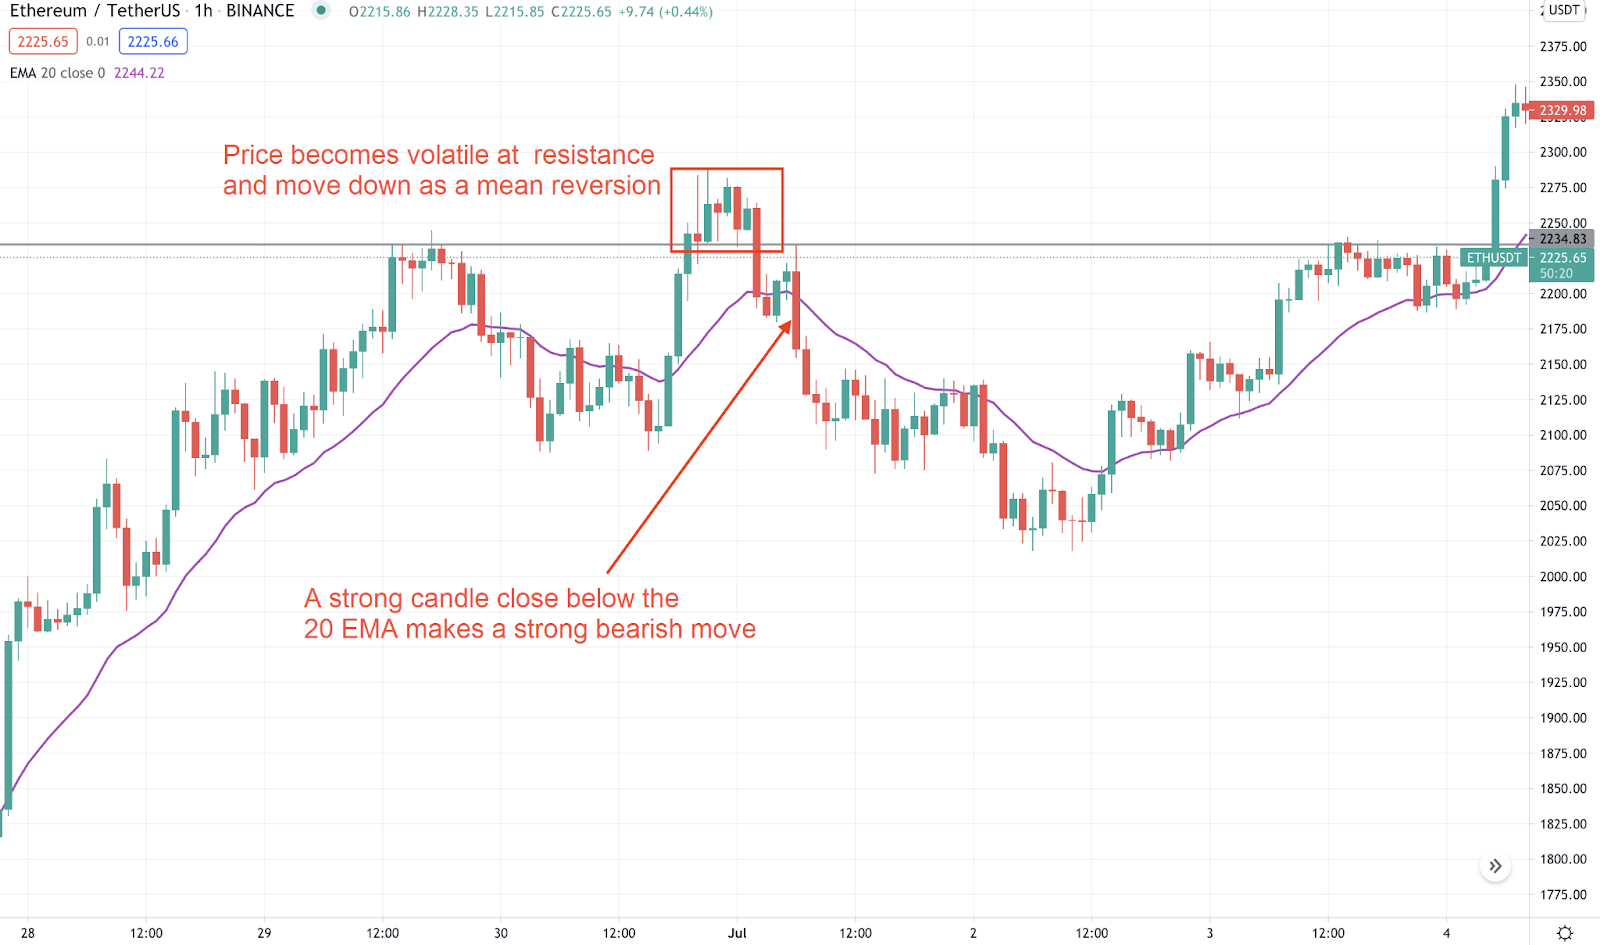 The resistance level of the price within the 20 EMA.